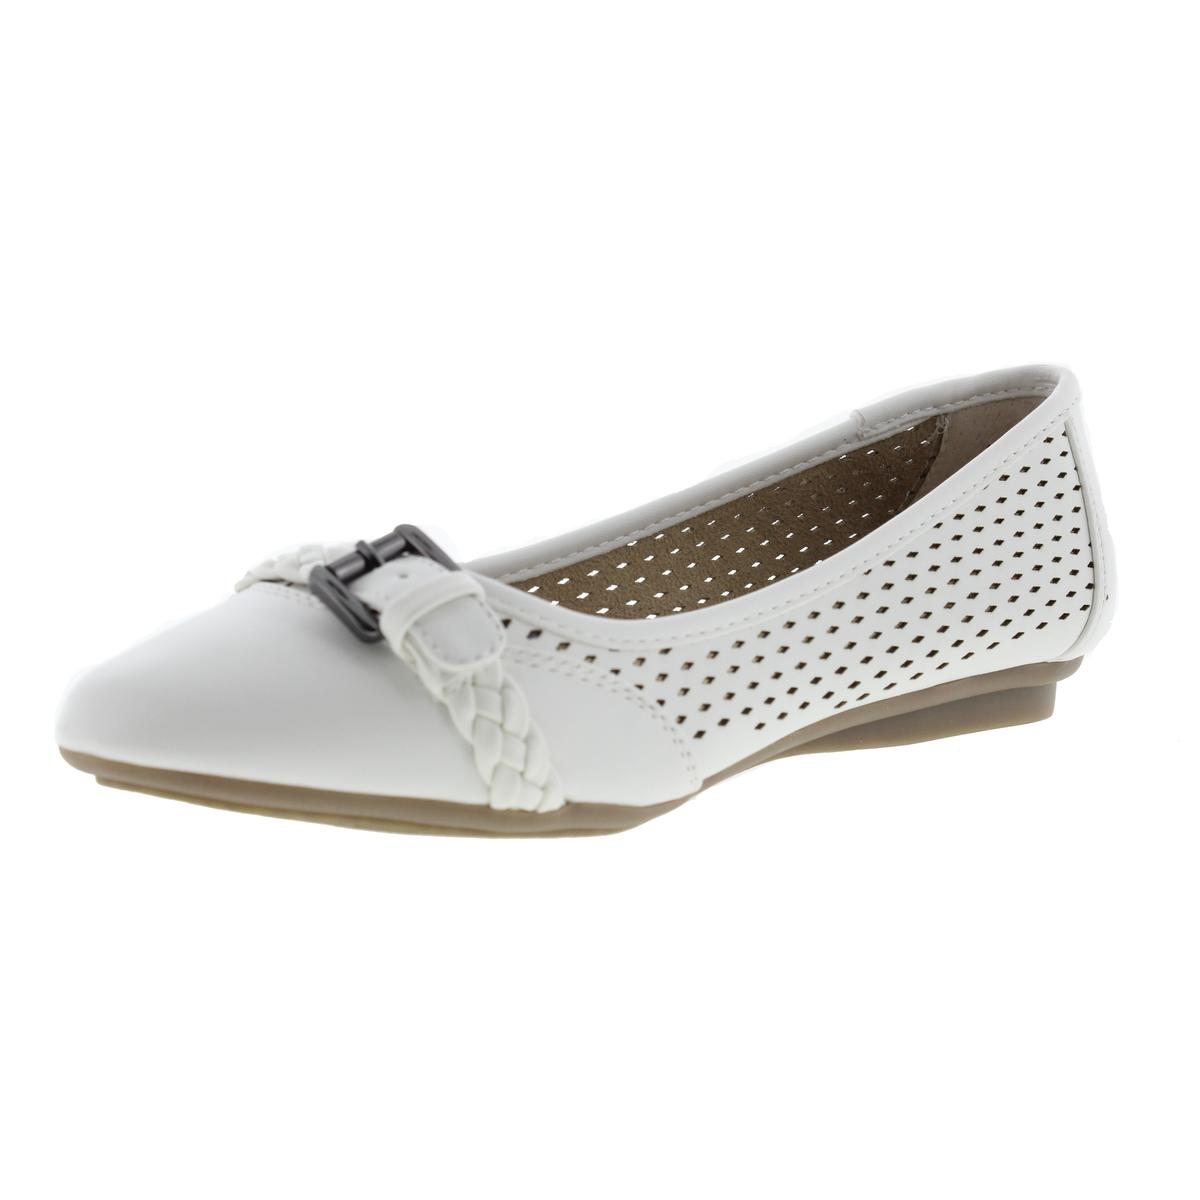 White Jelly Shoes Ebay